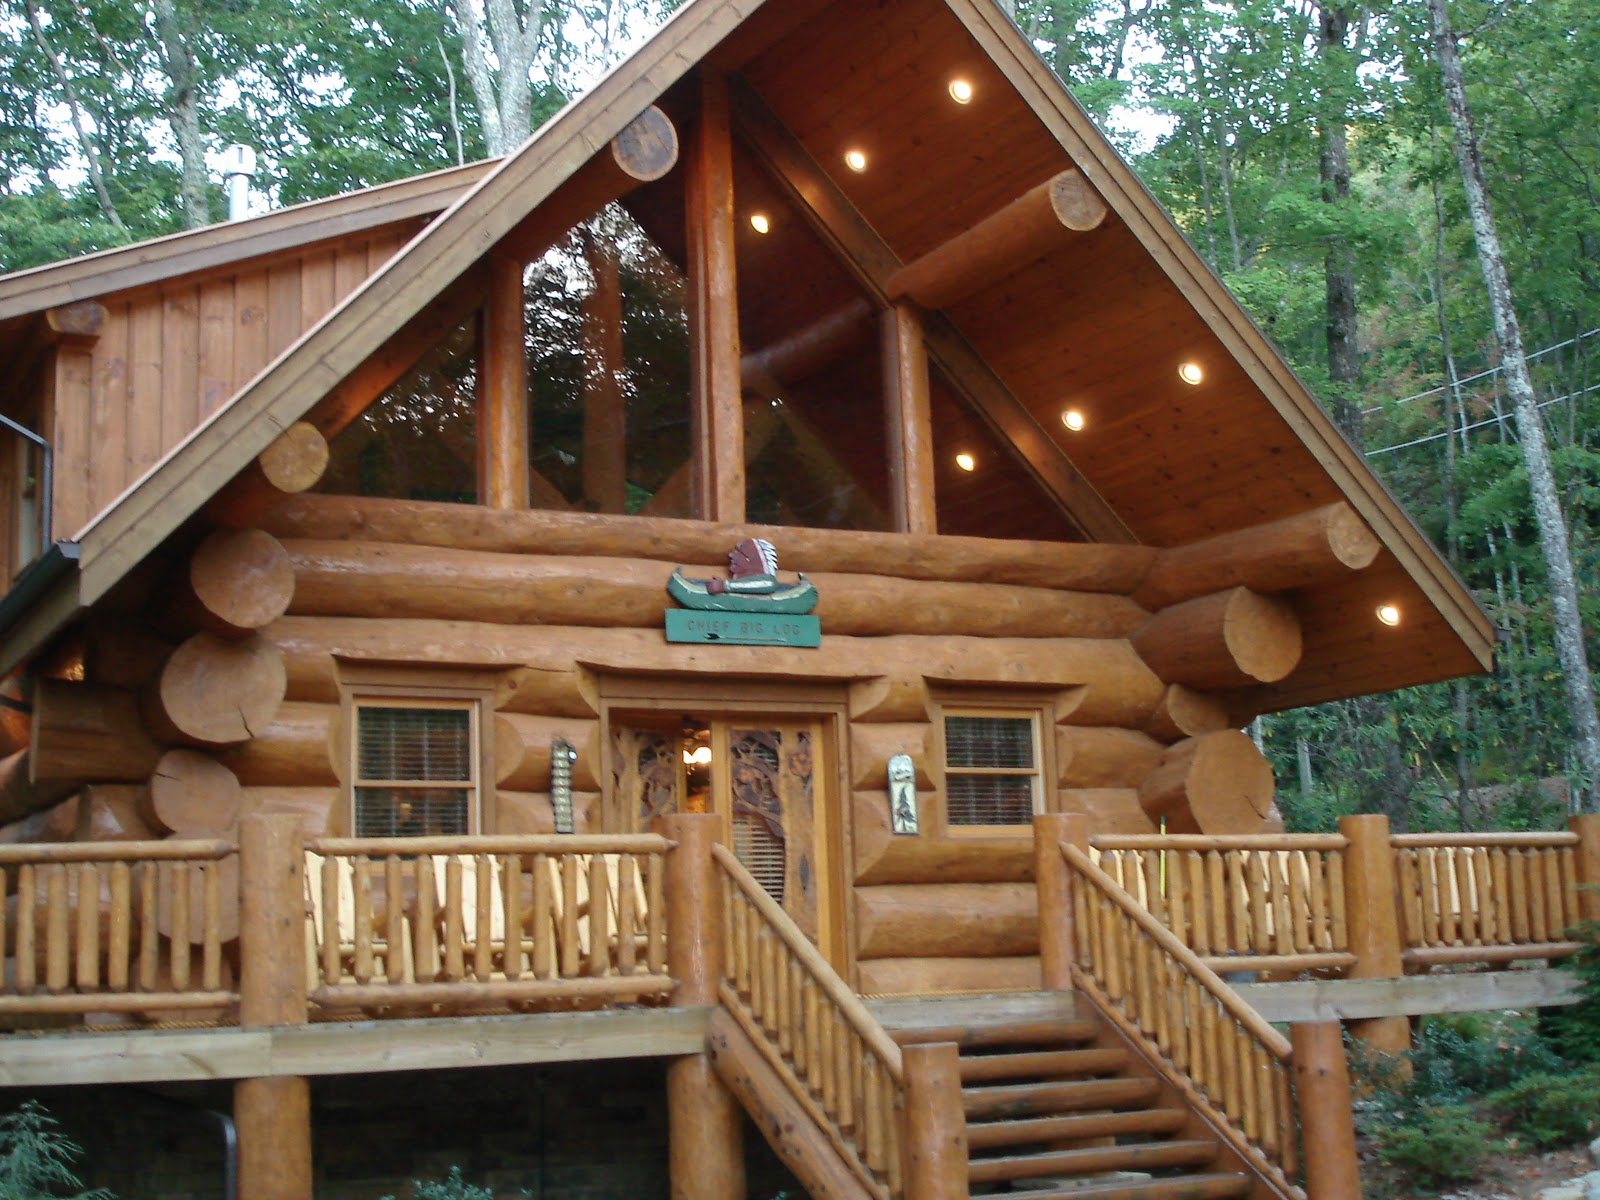 parks s north cheap carolina in log mountain for rentals mountains rent beach luxury state sale smoky cabins